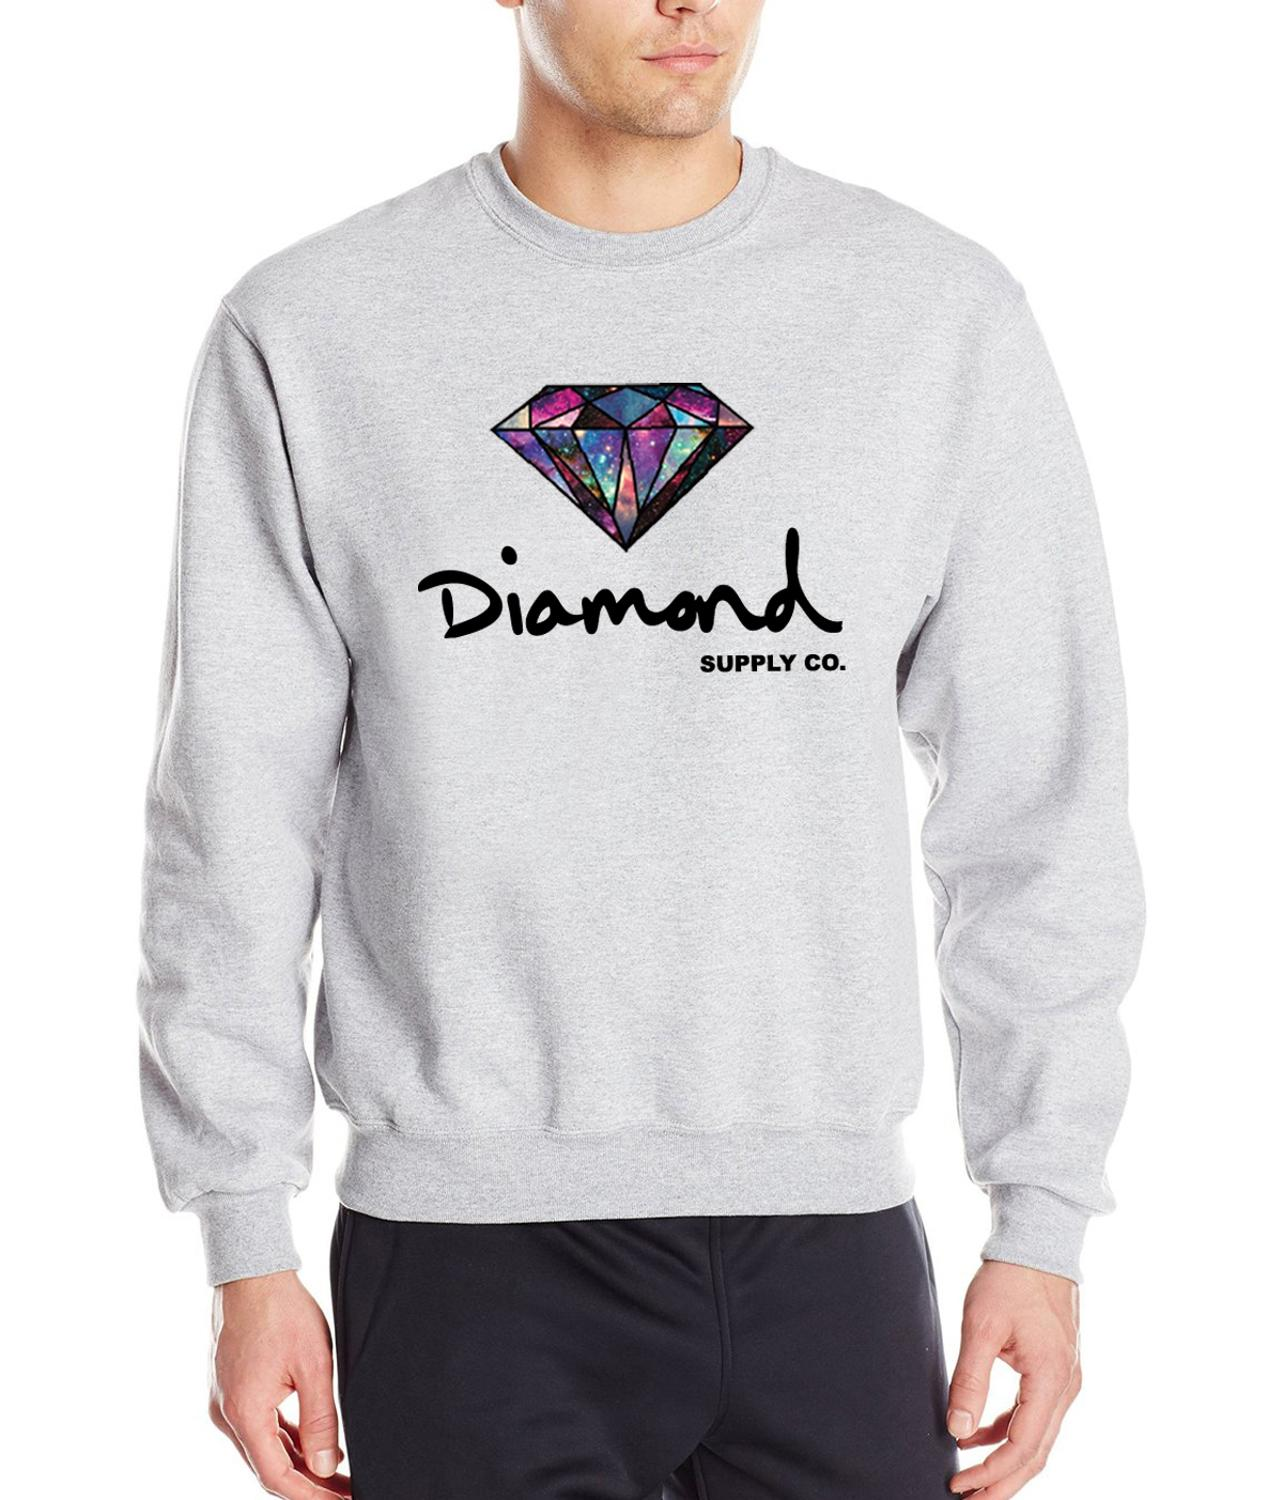 Online shopping for Clothing, Shoes & Jewelry from a great selection of Shirts, Active, Fashion Hoodies & Sweatshirts, Jackets & Coats, Pants, Suits & Sport Coats & more at everyday low prices.